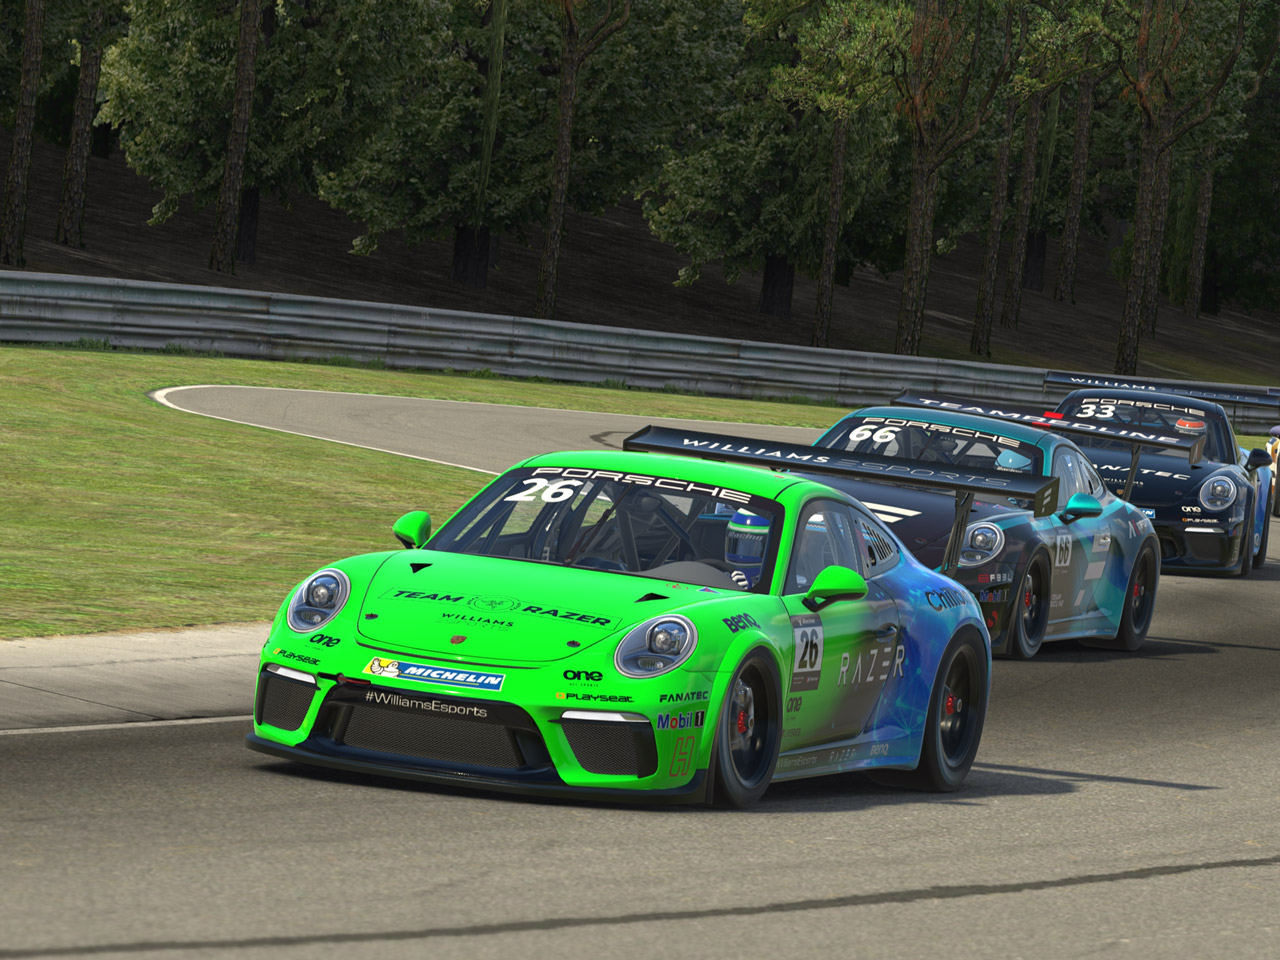 Porsche Porsche Esports Supercup. The next level of motorsports.